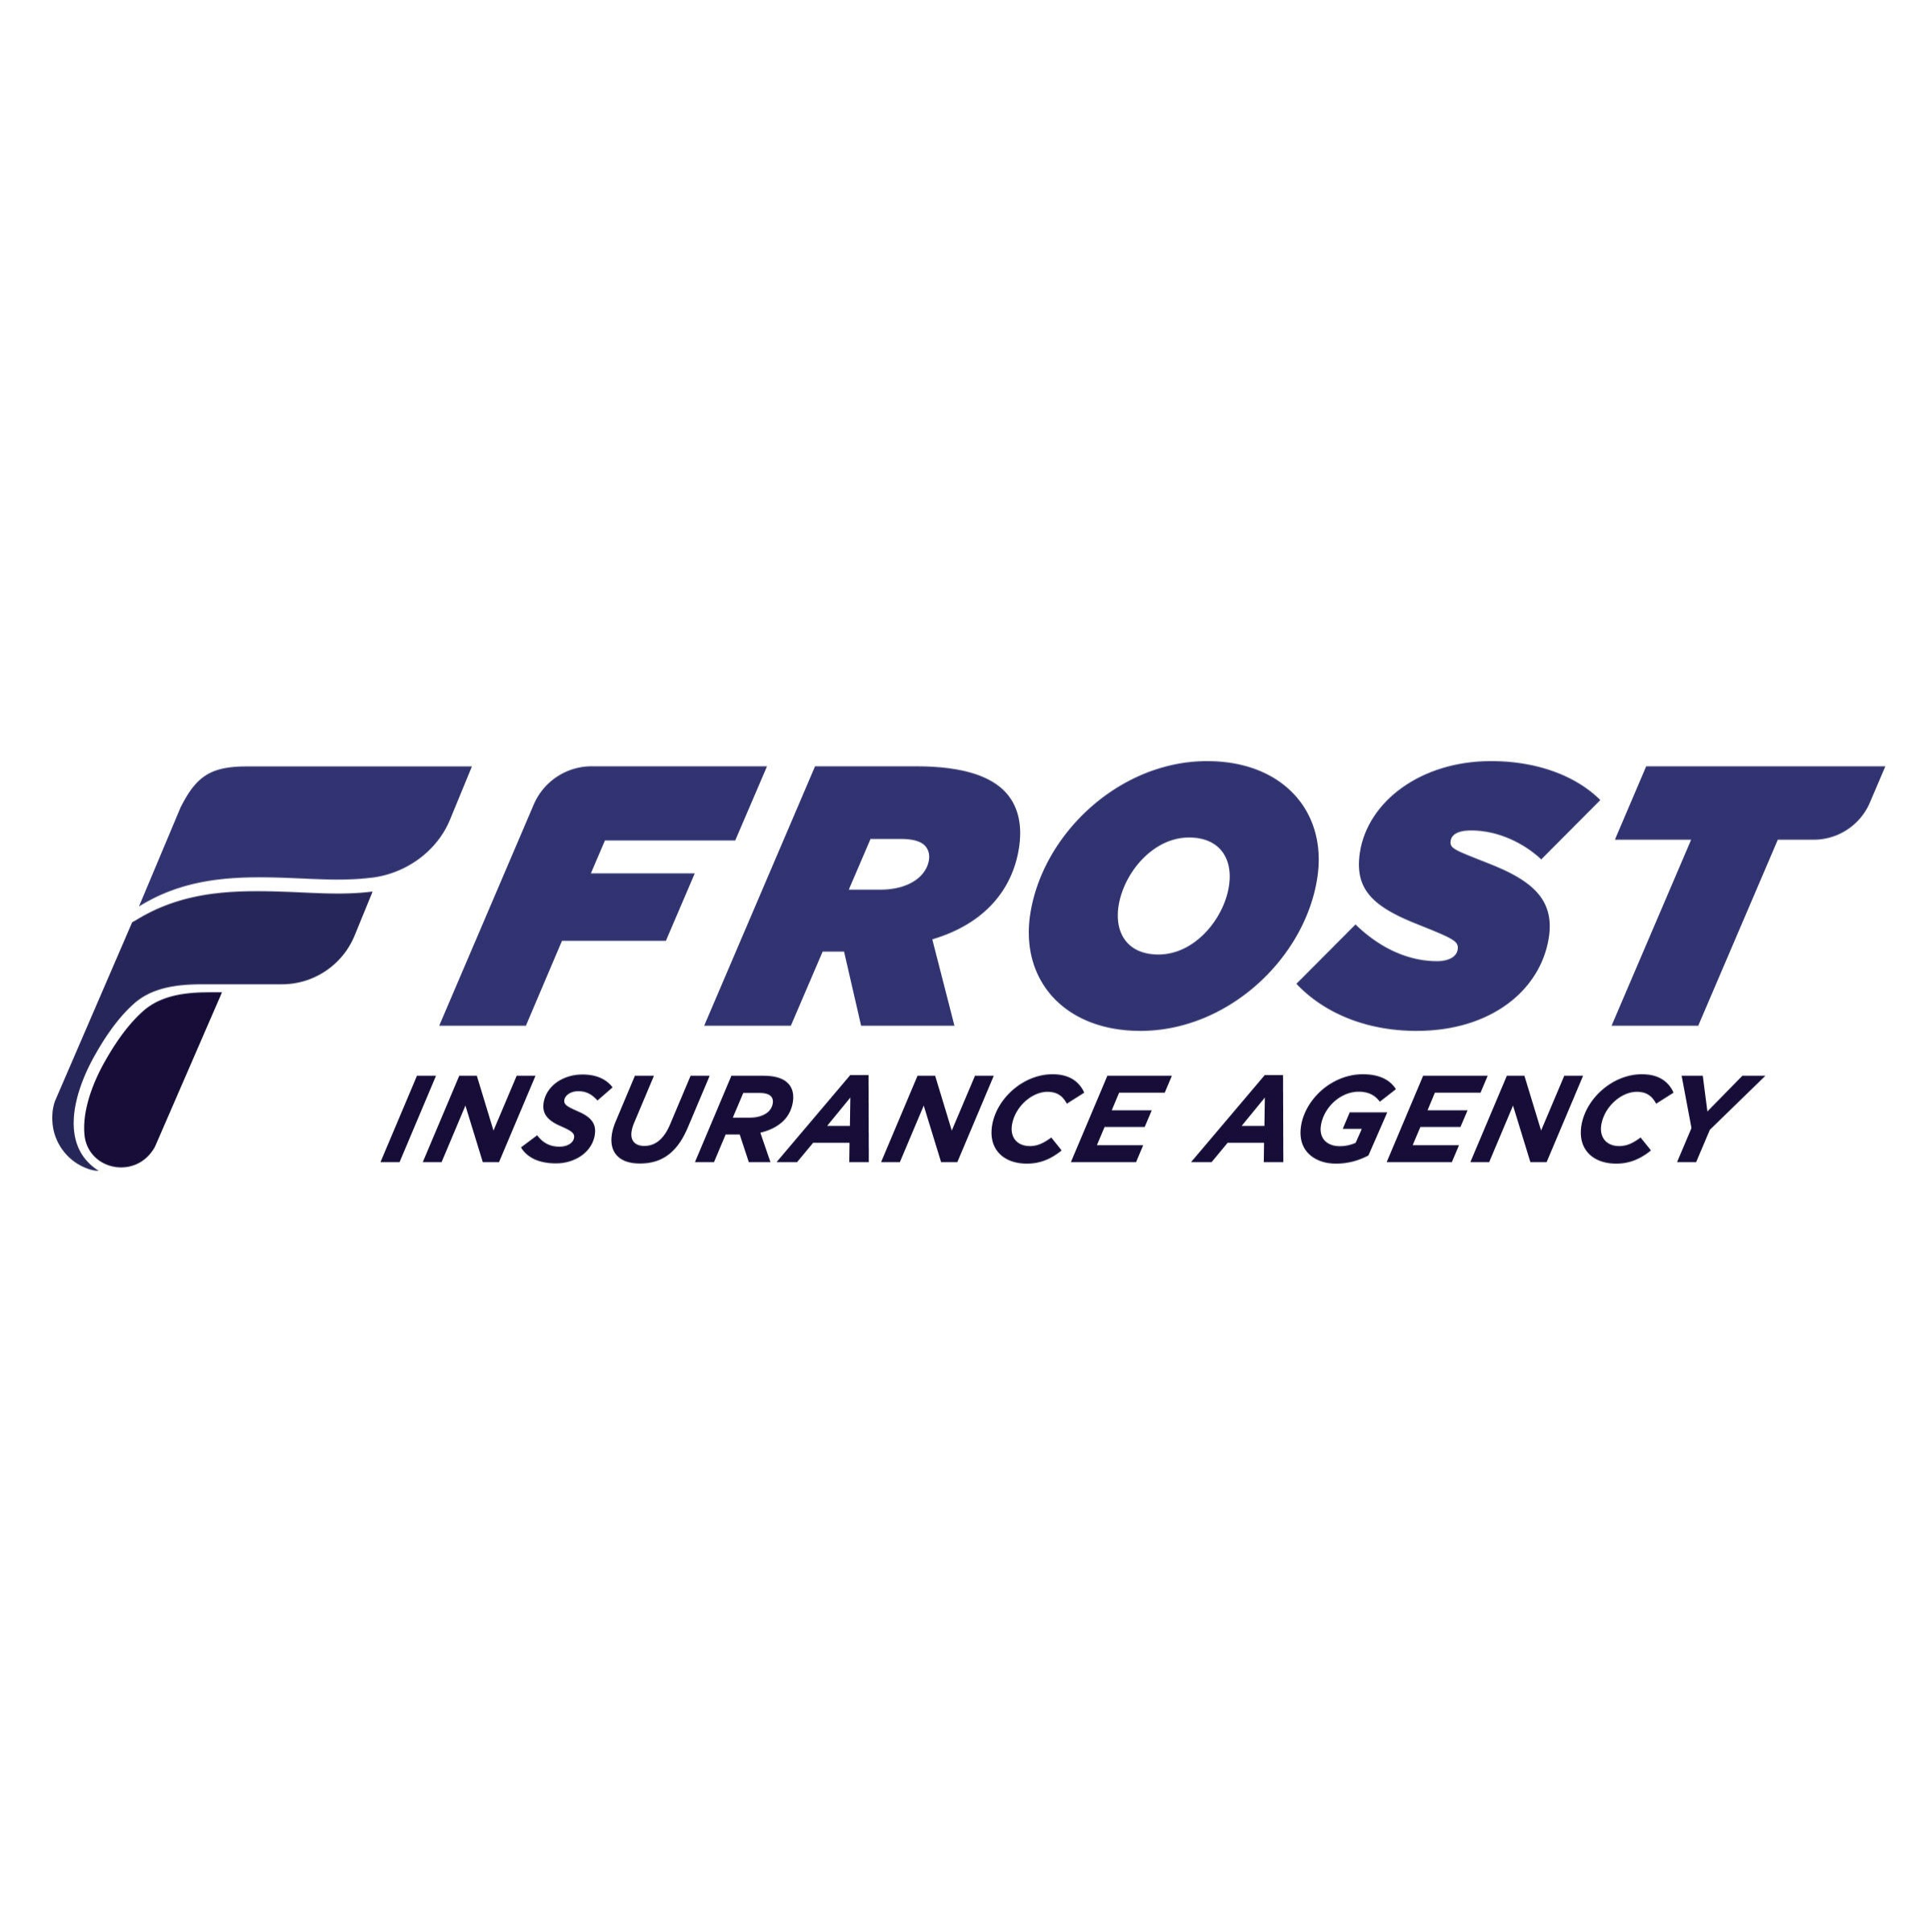 Thomas D Frost, Insurance Agent